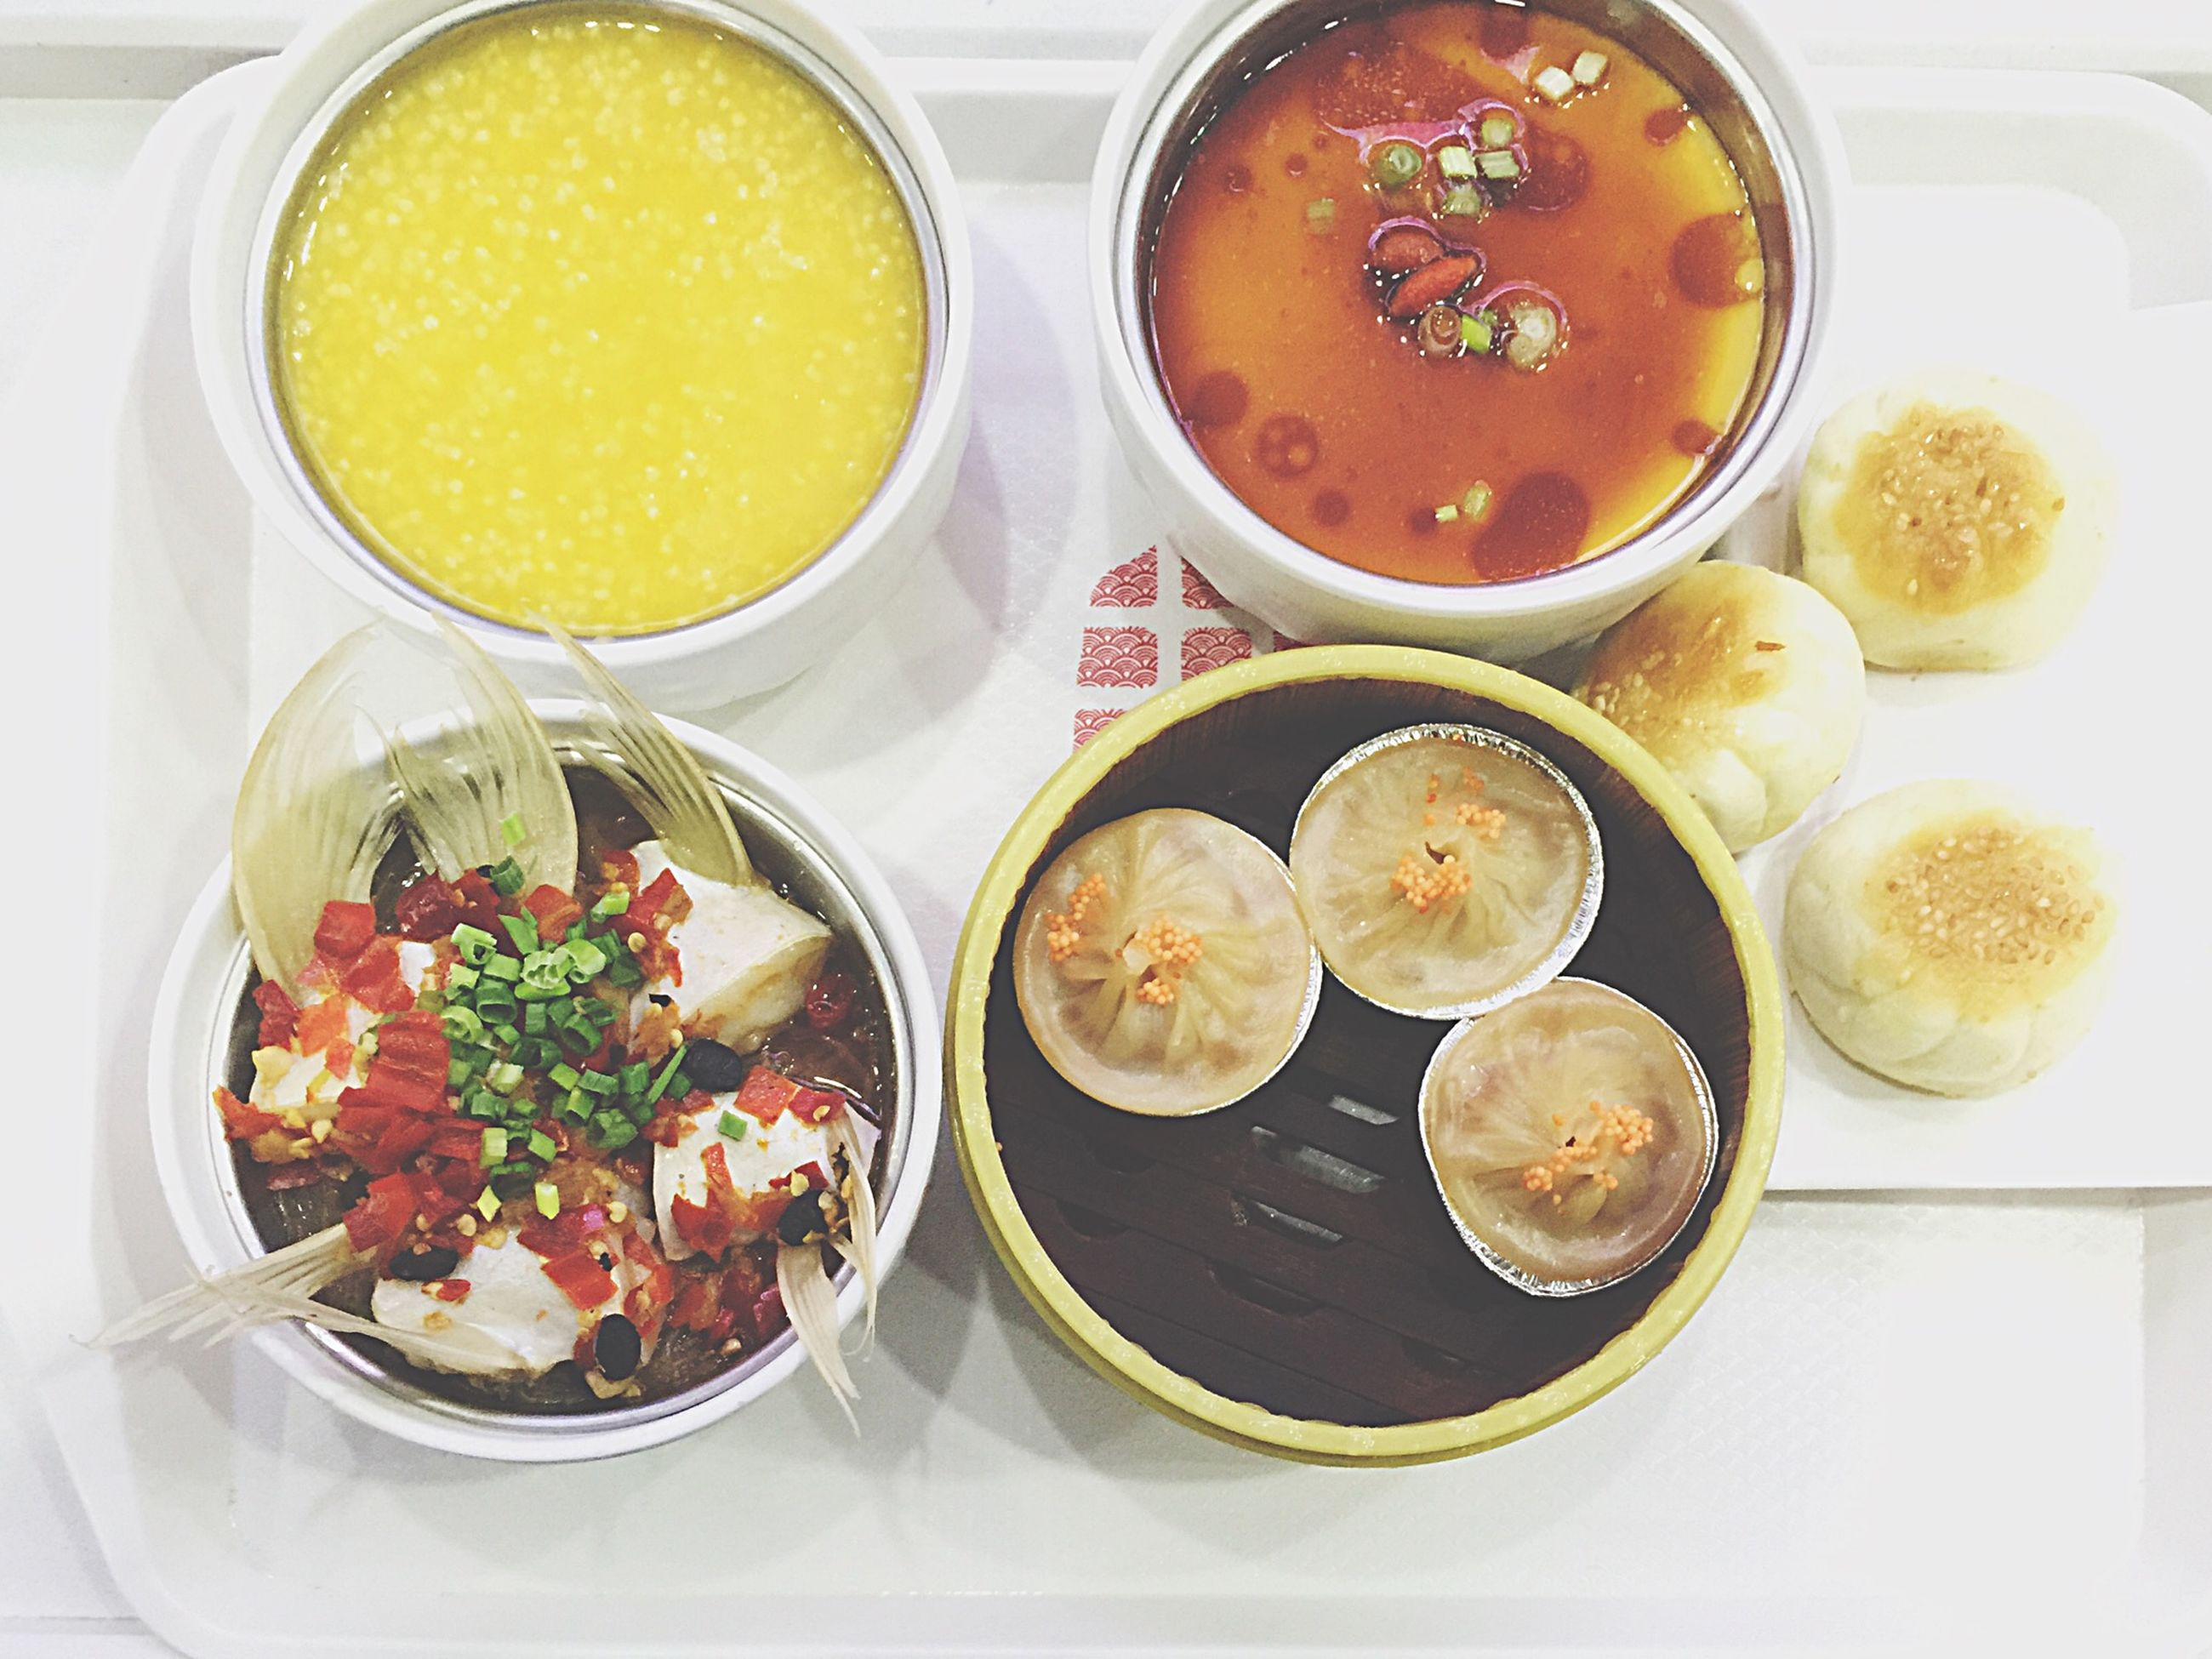 food and drink, indoors, food, freshness, ready-to-eat, plate, table, serving size, bowl, meal, vegetable, served, soup, indulgence, temptation, garnish, homemade, appetizer, tray, prepared potato, place setting, main course, lunch